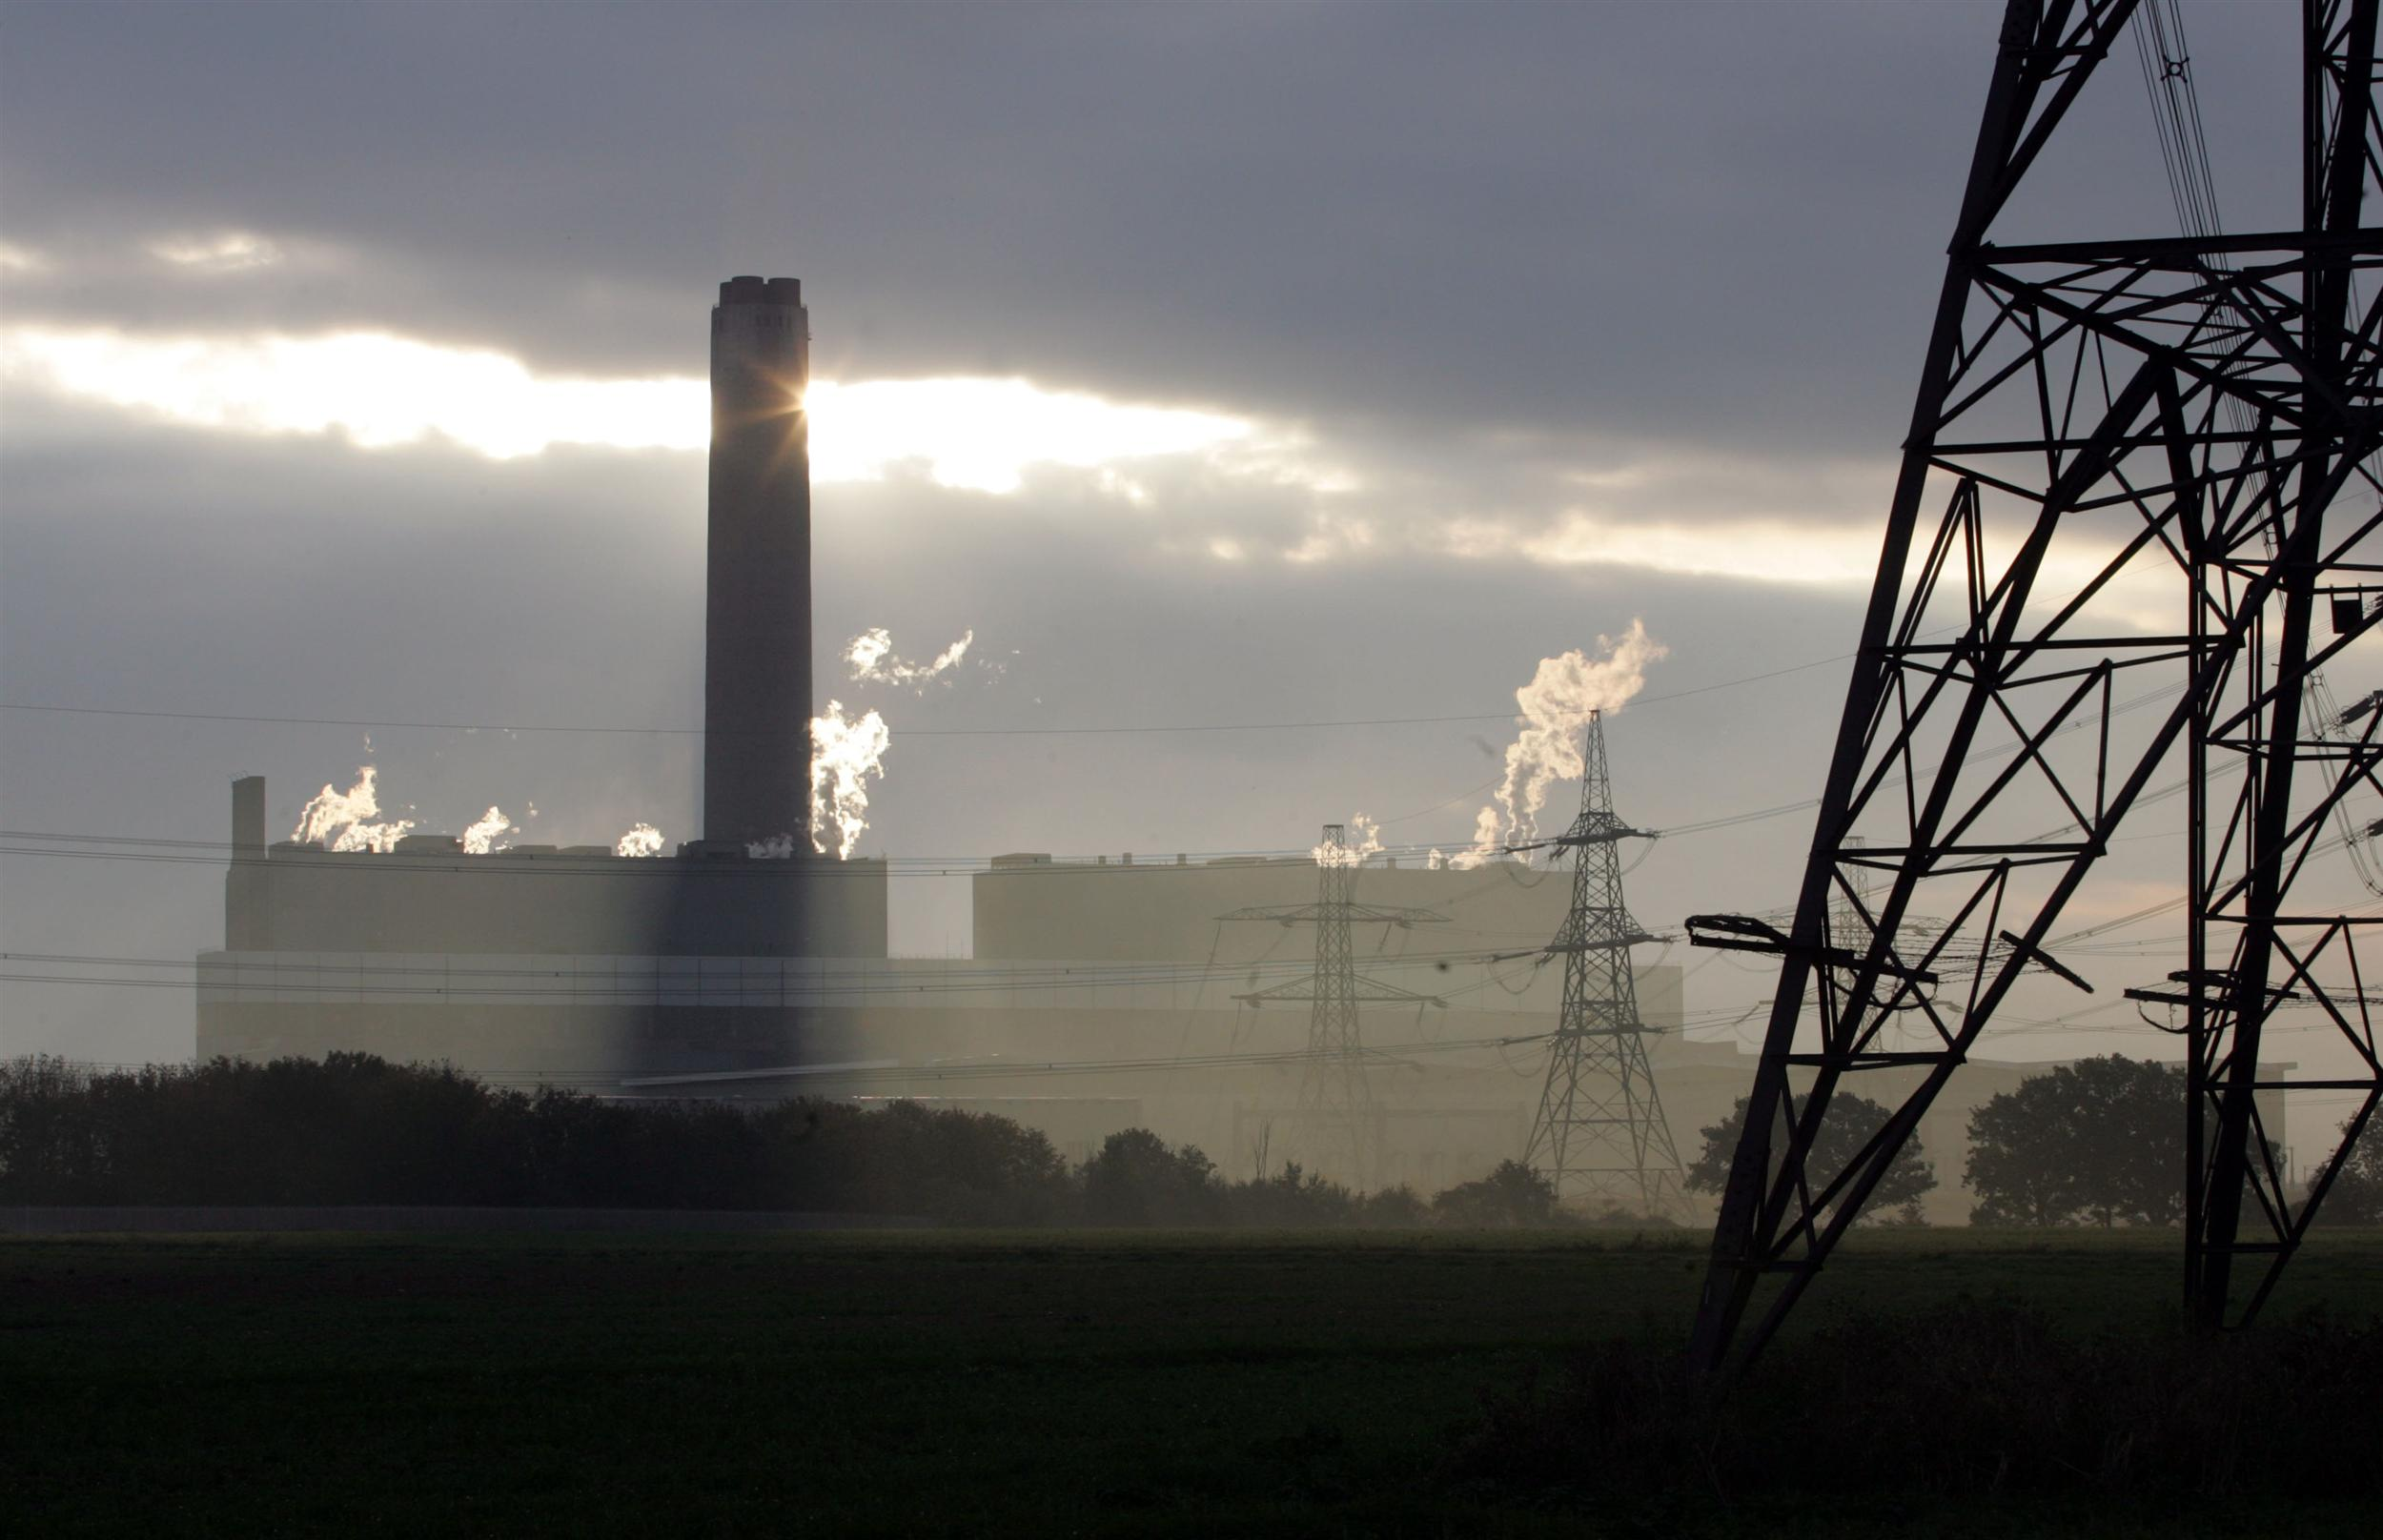 Kingsnorth Power Station with smoke coming out